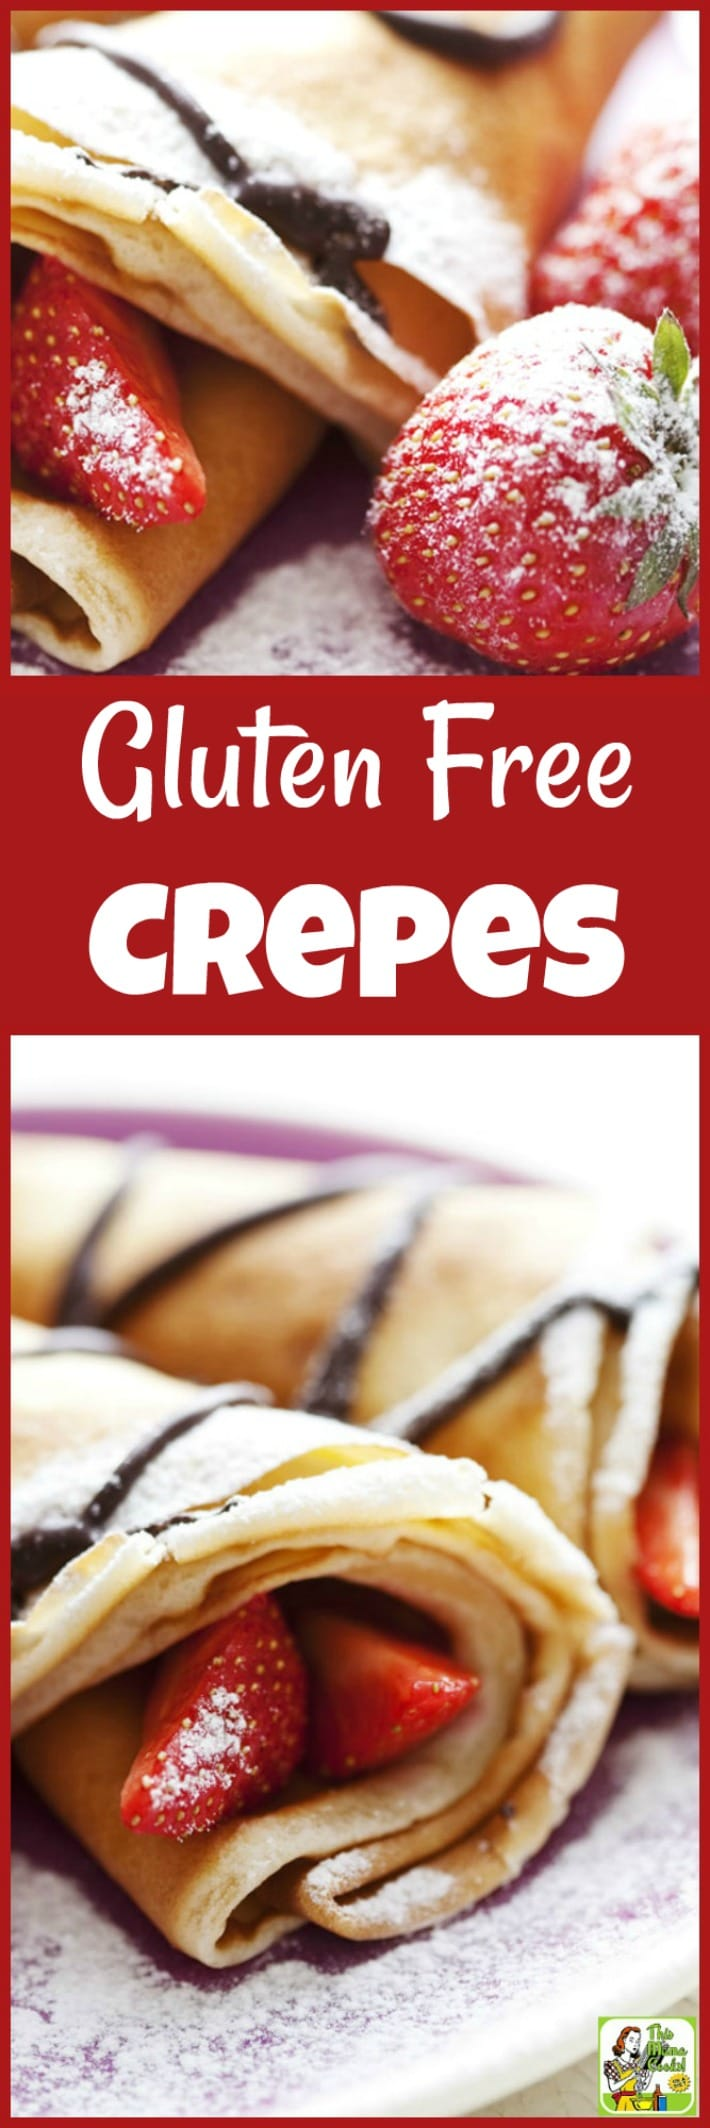 Serve Gluten Free Crepes for Valentine\'s Day,  Pancake Tuesday or Mother\'s Day. It\'s also a paleo crepe recipe with a few substitutions. #pancaketuesday #recipes #recipeoftheday #healthyrecipes #easyrecipe #easyrecipe #breakfast #brunch #dessert #dessertrecipes #crepes #pancakes #pancakerecipes #pancakesfromscratch #pancakeday #crepesrecipe